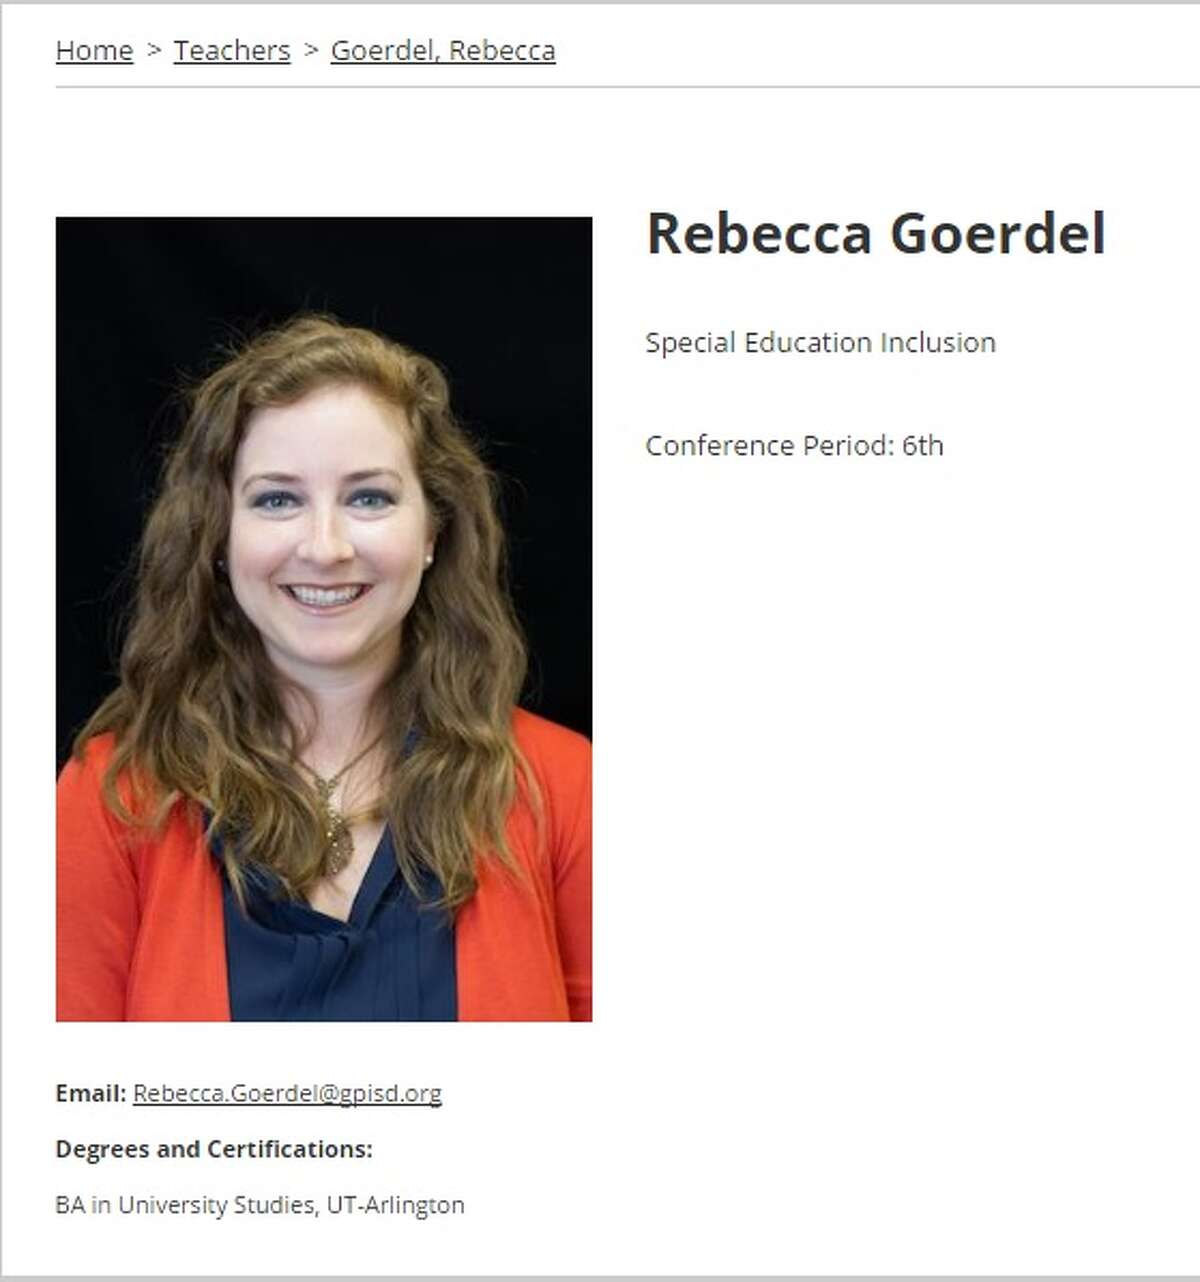 Rebecca Goerdel was arrested March 24, 2017 for allegedly participating in an improper relationship with a student in Grand Prairie Independent School District.